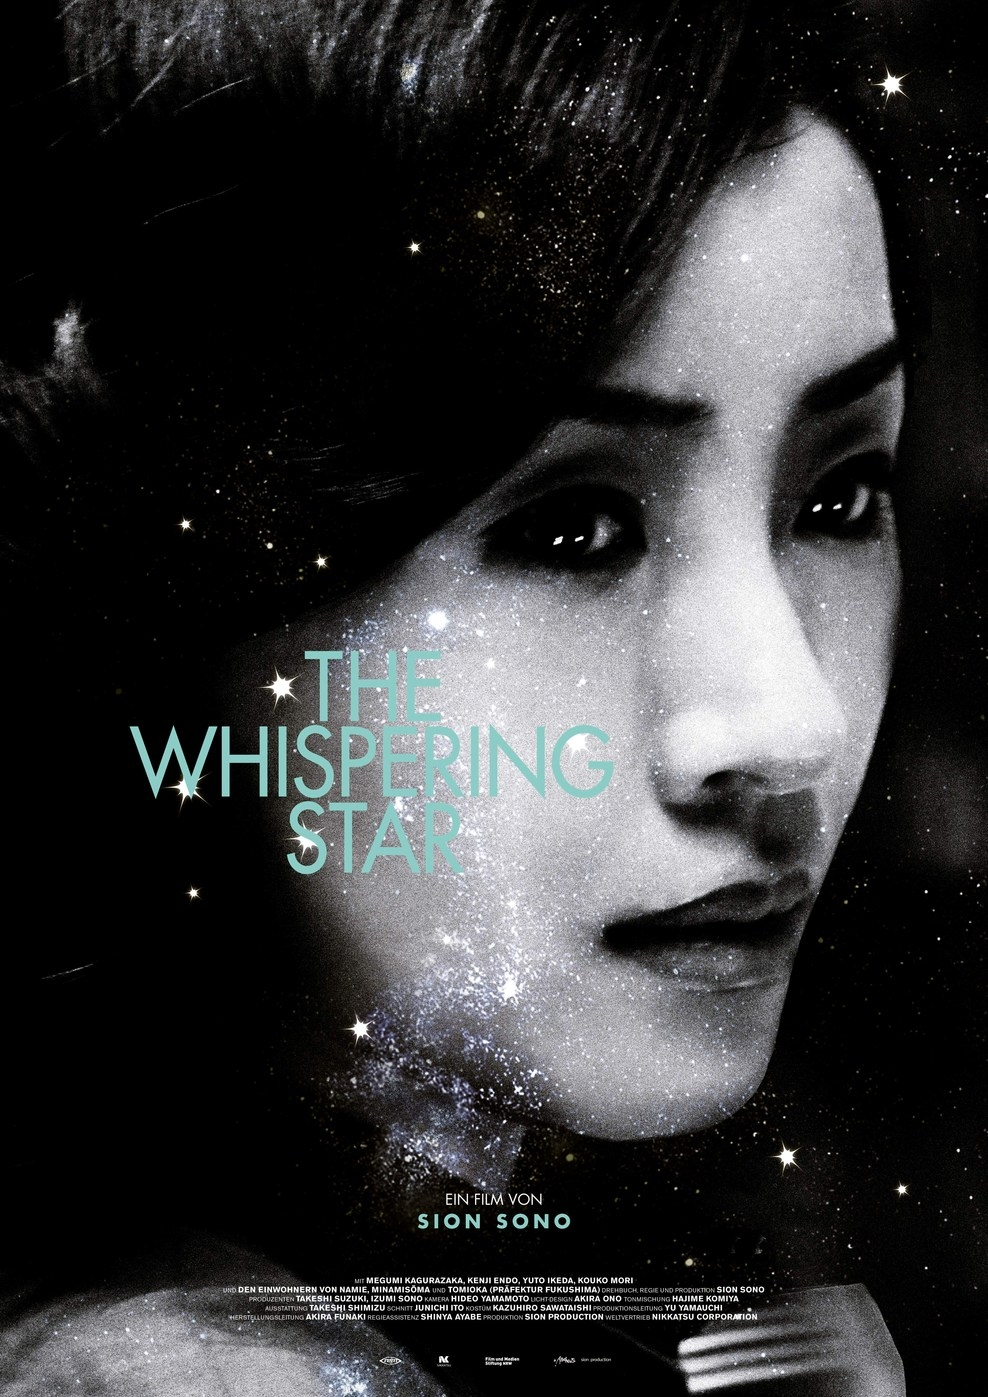 The Whispering Star (Poster)